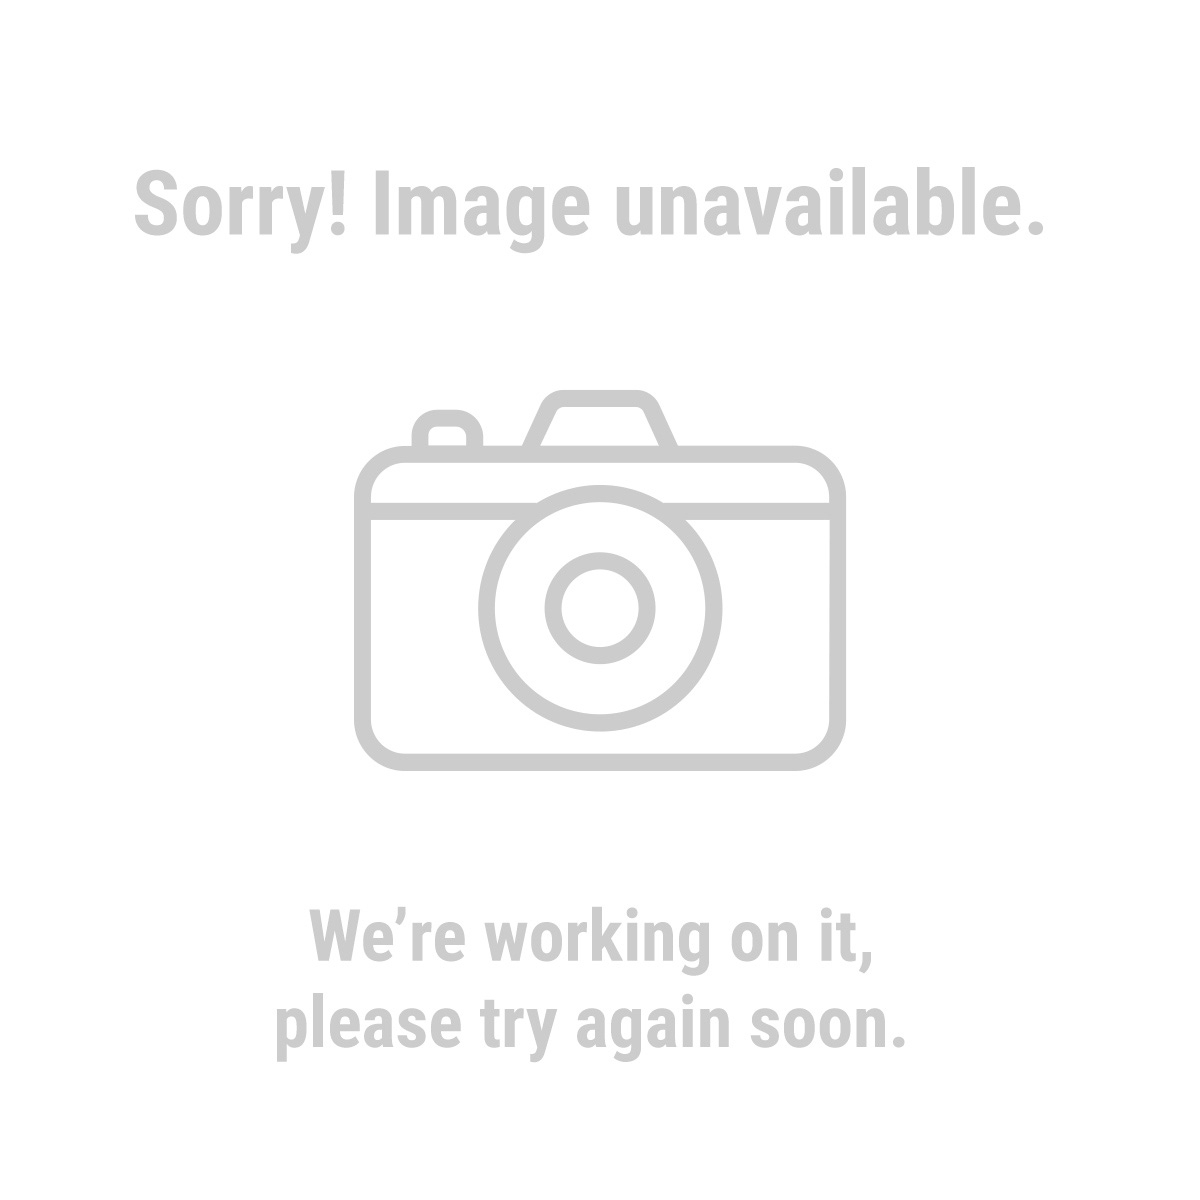 Marathon Electric 2073 1-1/2 HP Home/Hobbyist Motor